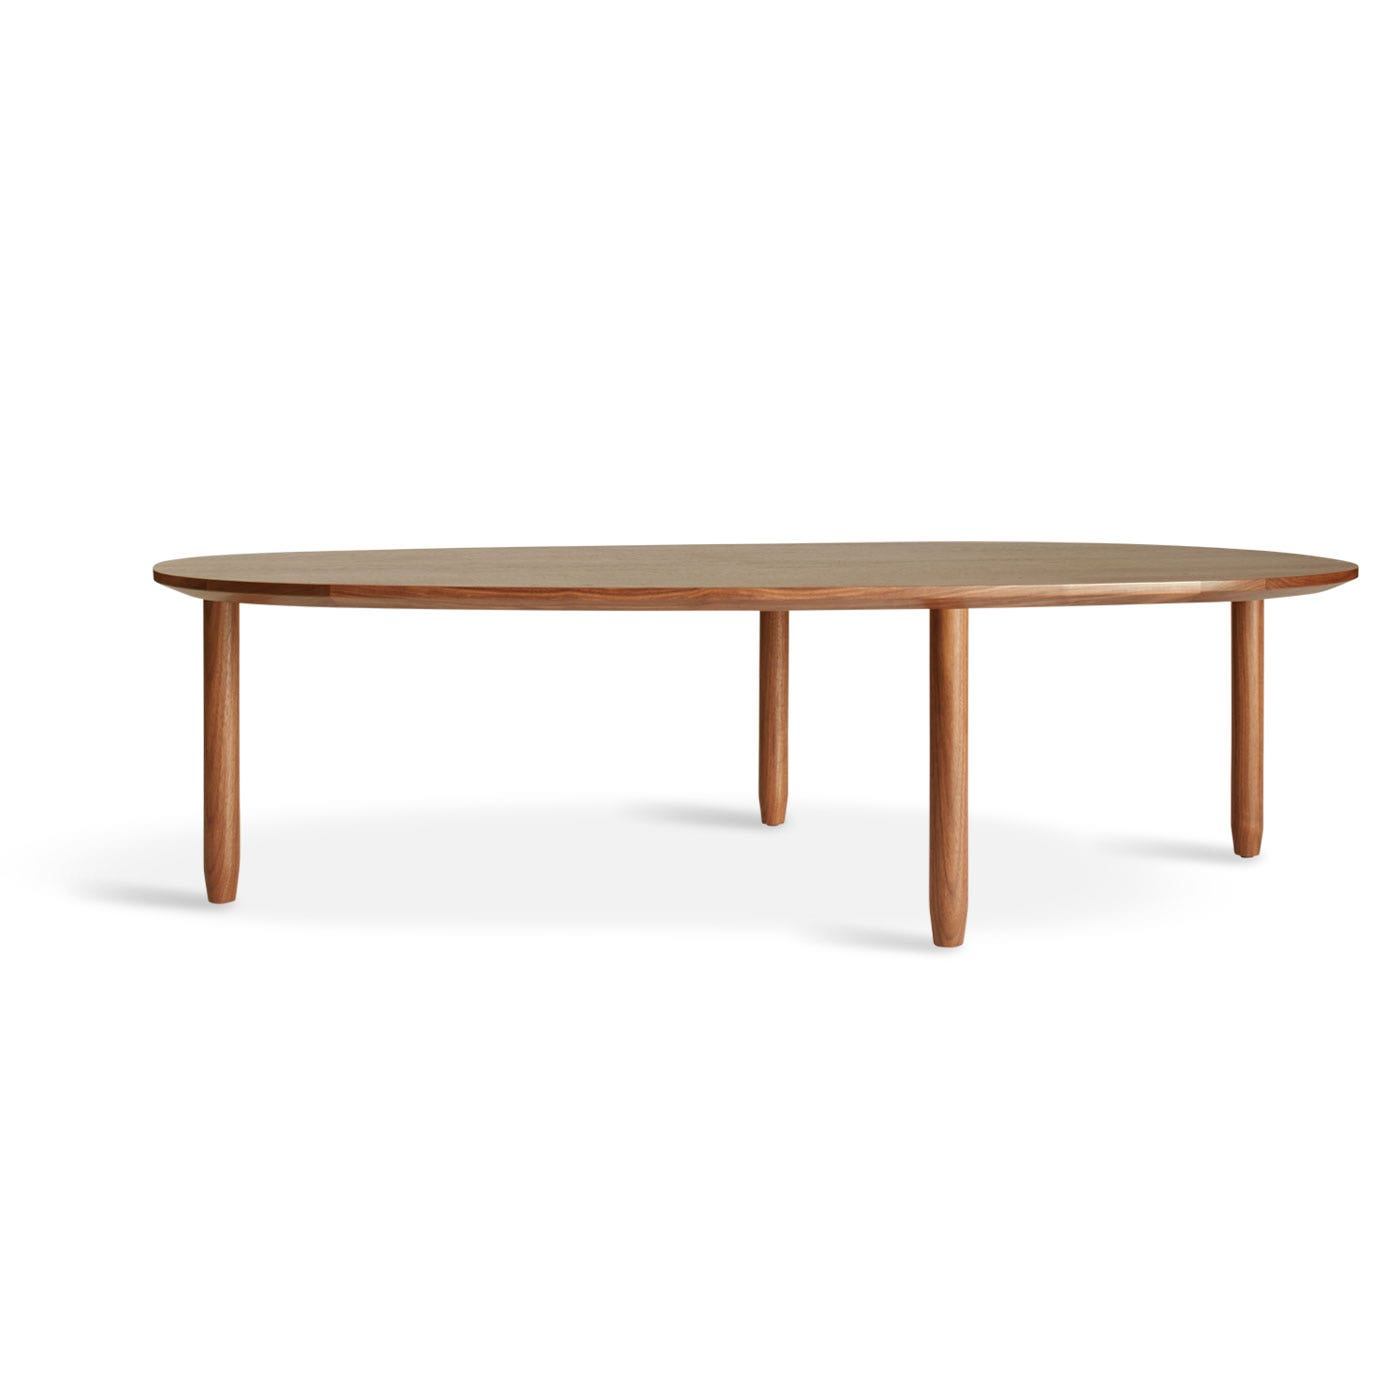 swole large table  large modern coffee table  blu dot - previous image swole modern large coffee table